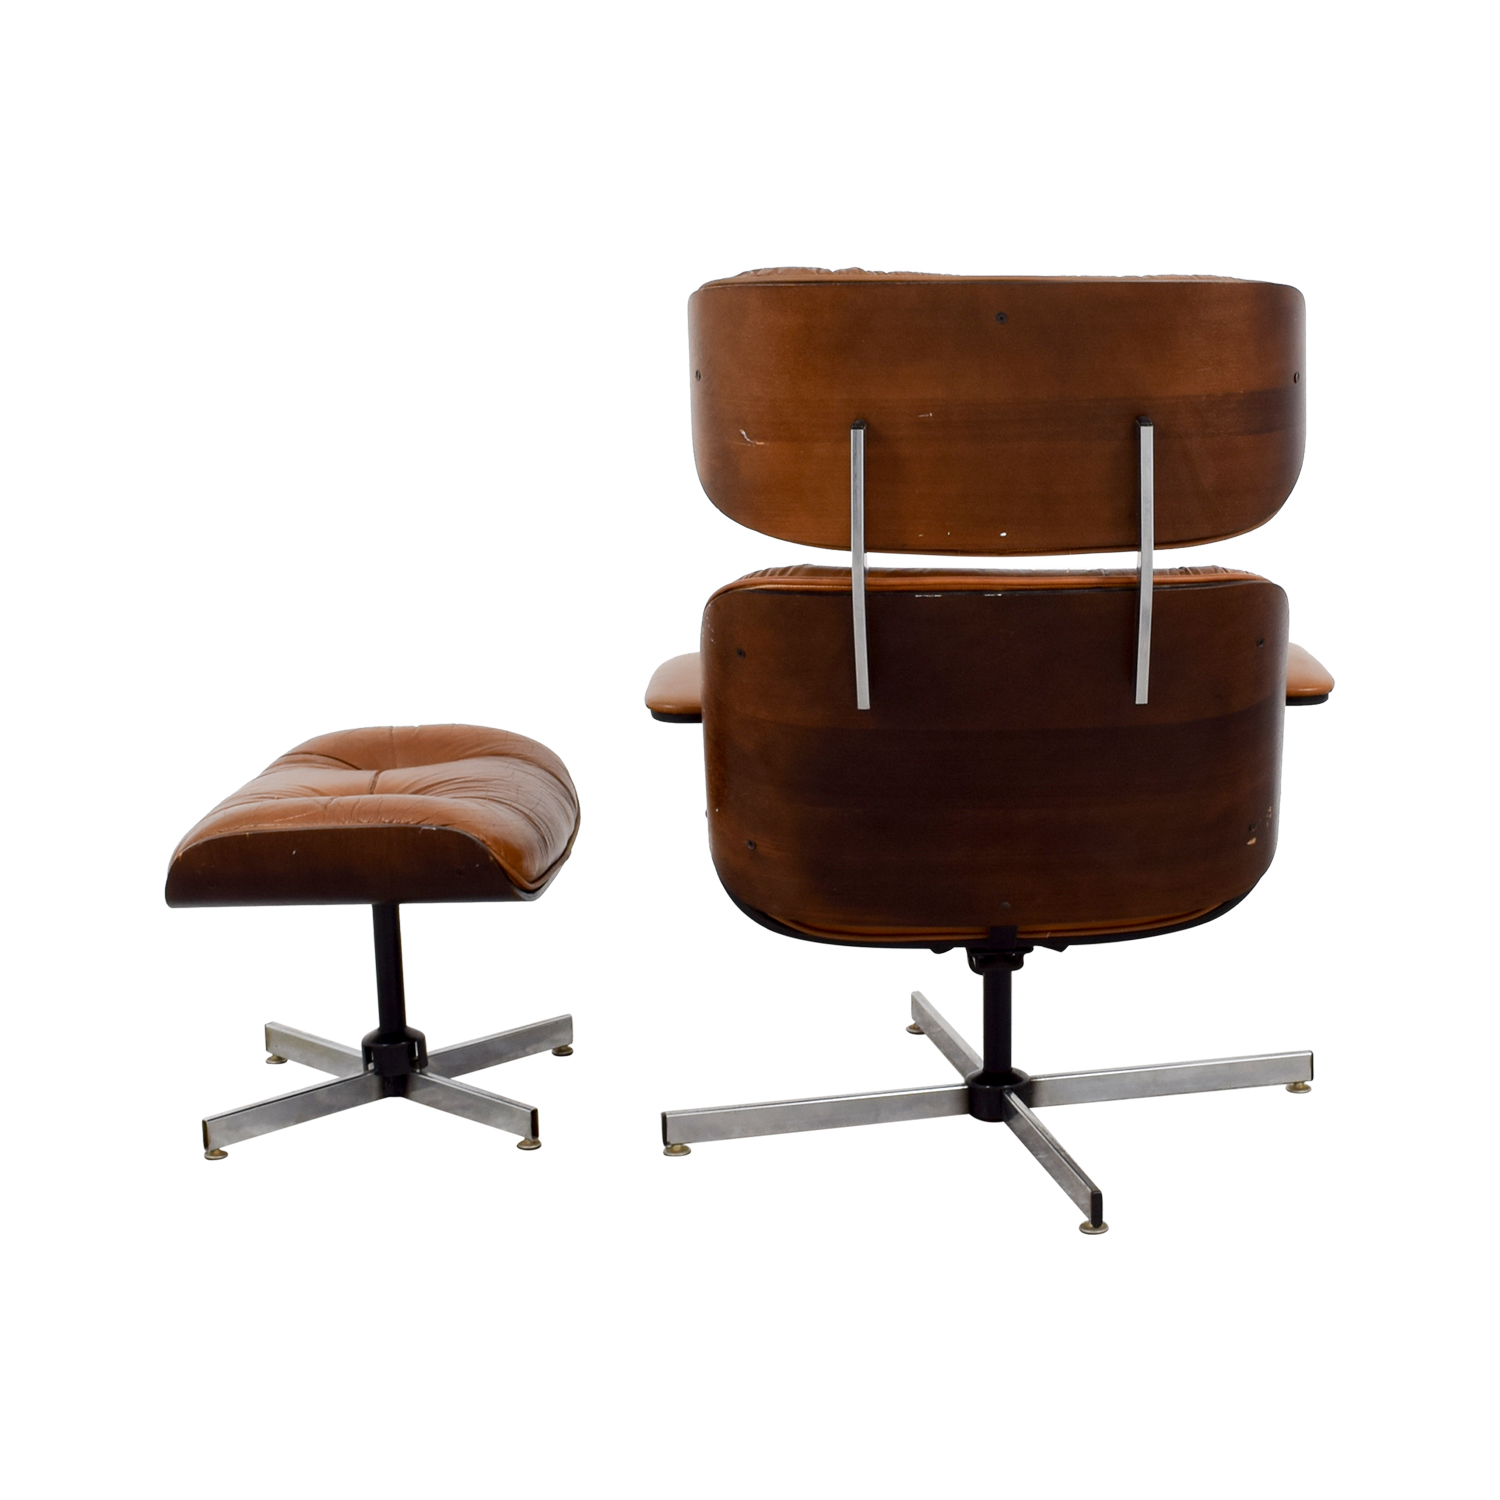 Captivating Eames Replica Leather Chair With Ottoman Discount